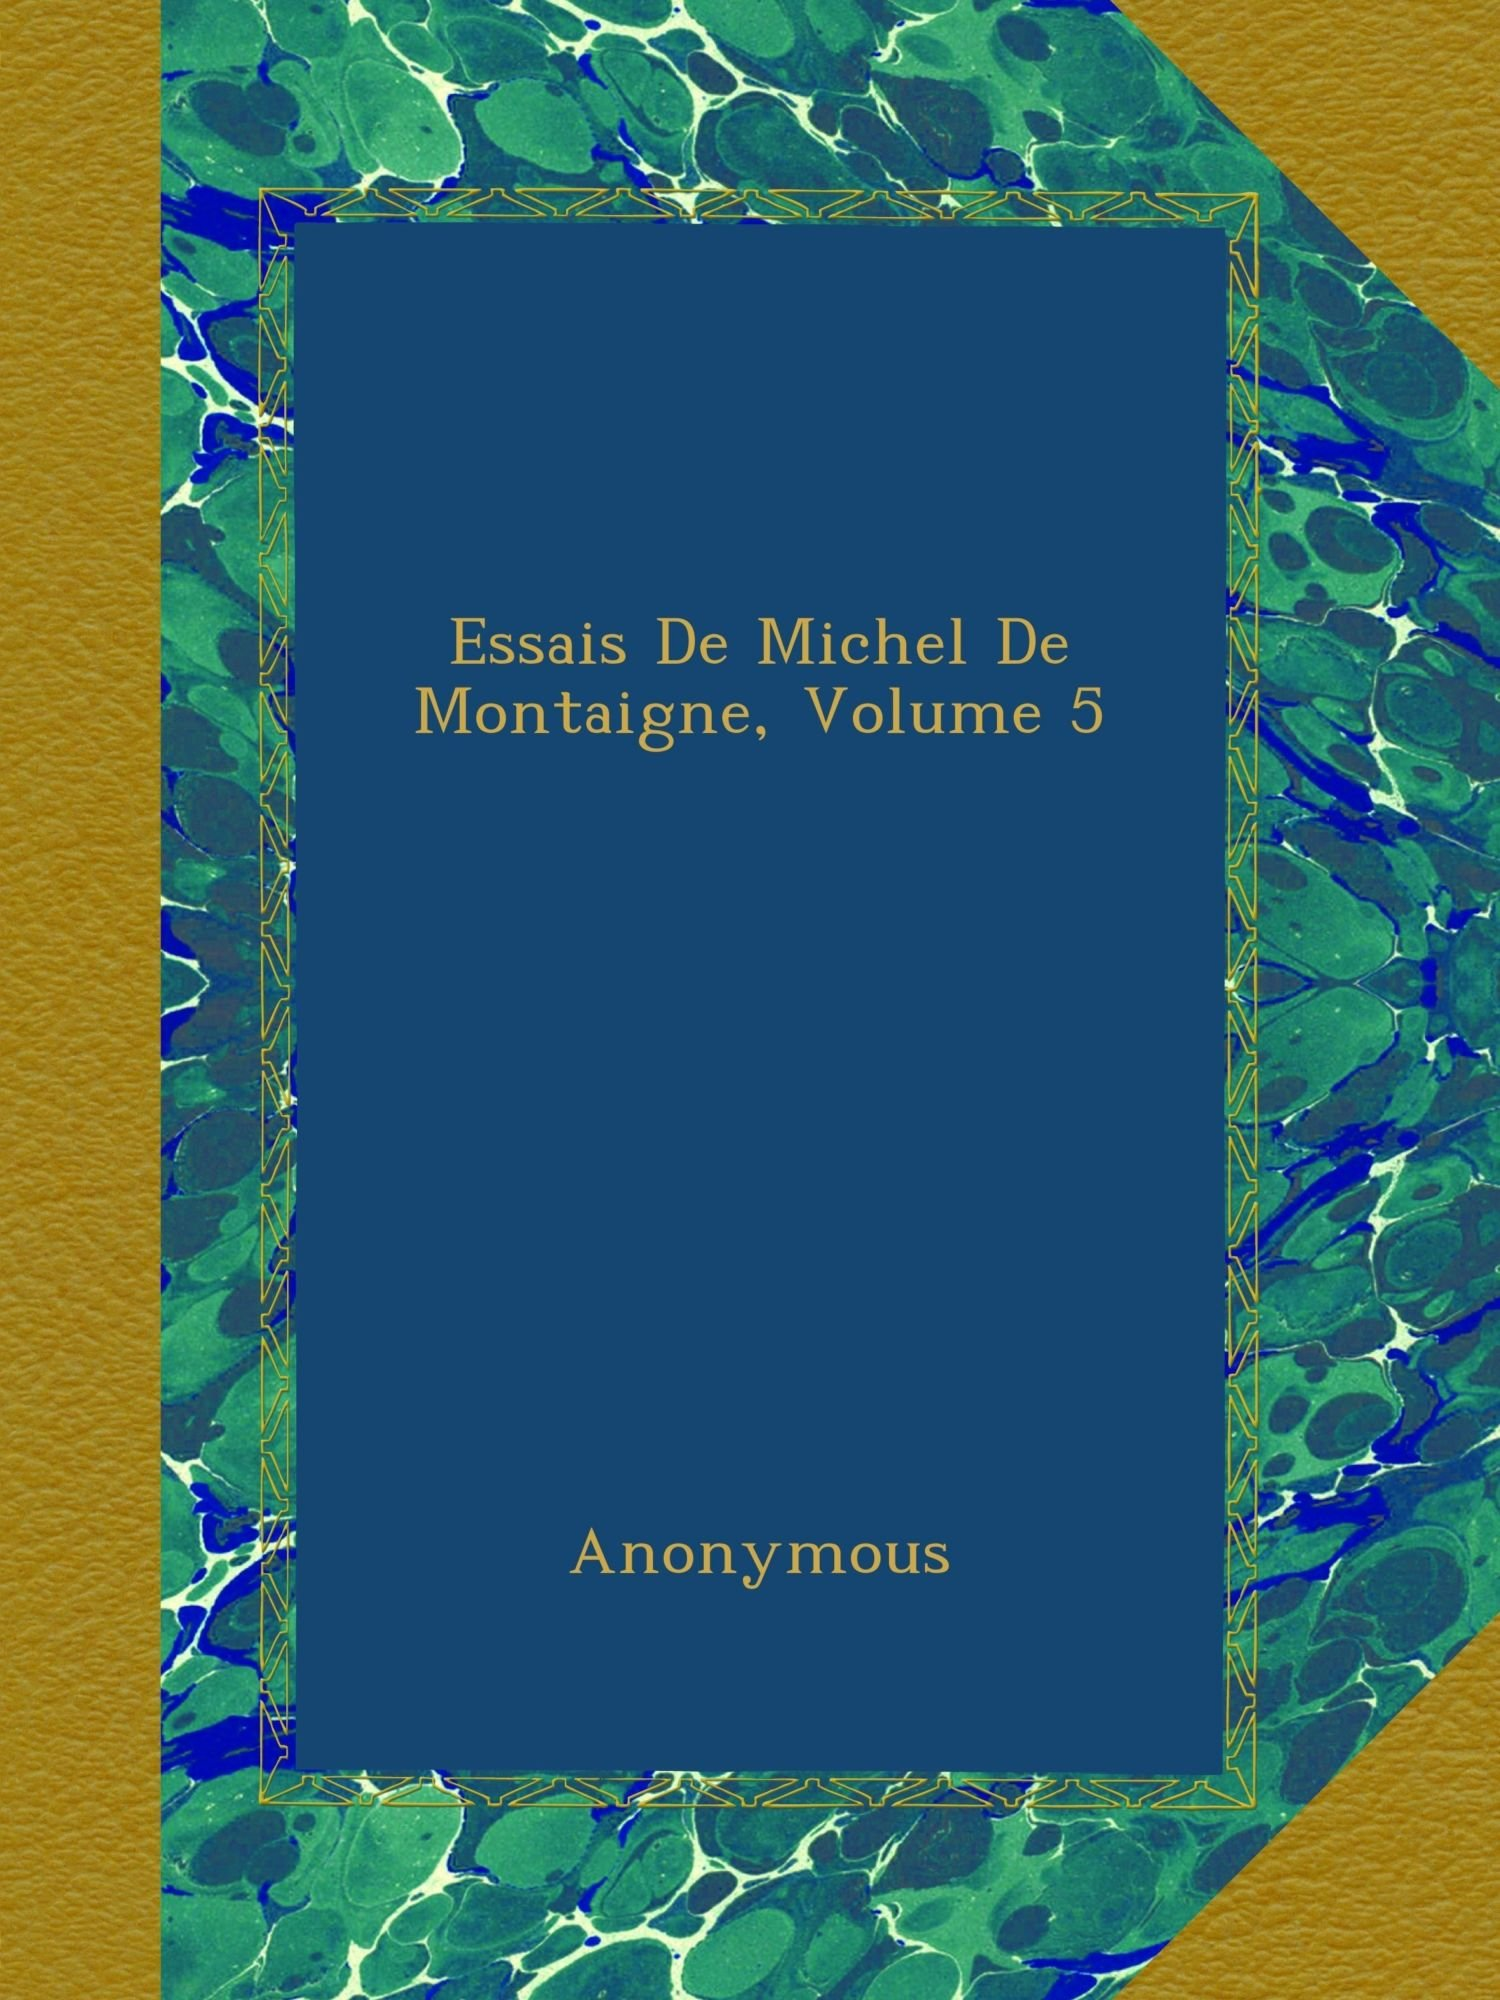 Essais De Michel De Montaigne, Volume 5 (French Edition) pdf epub